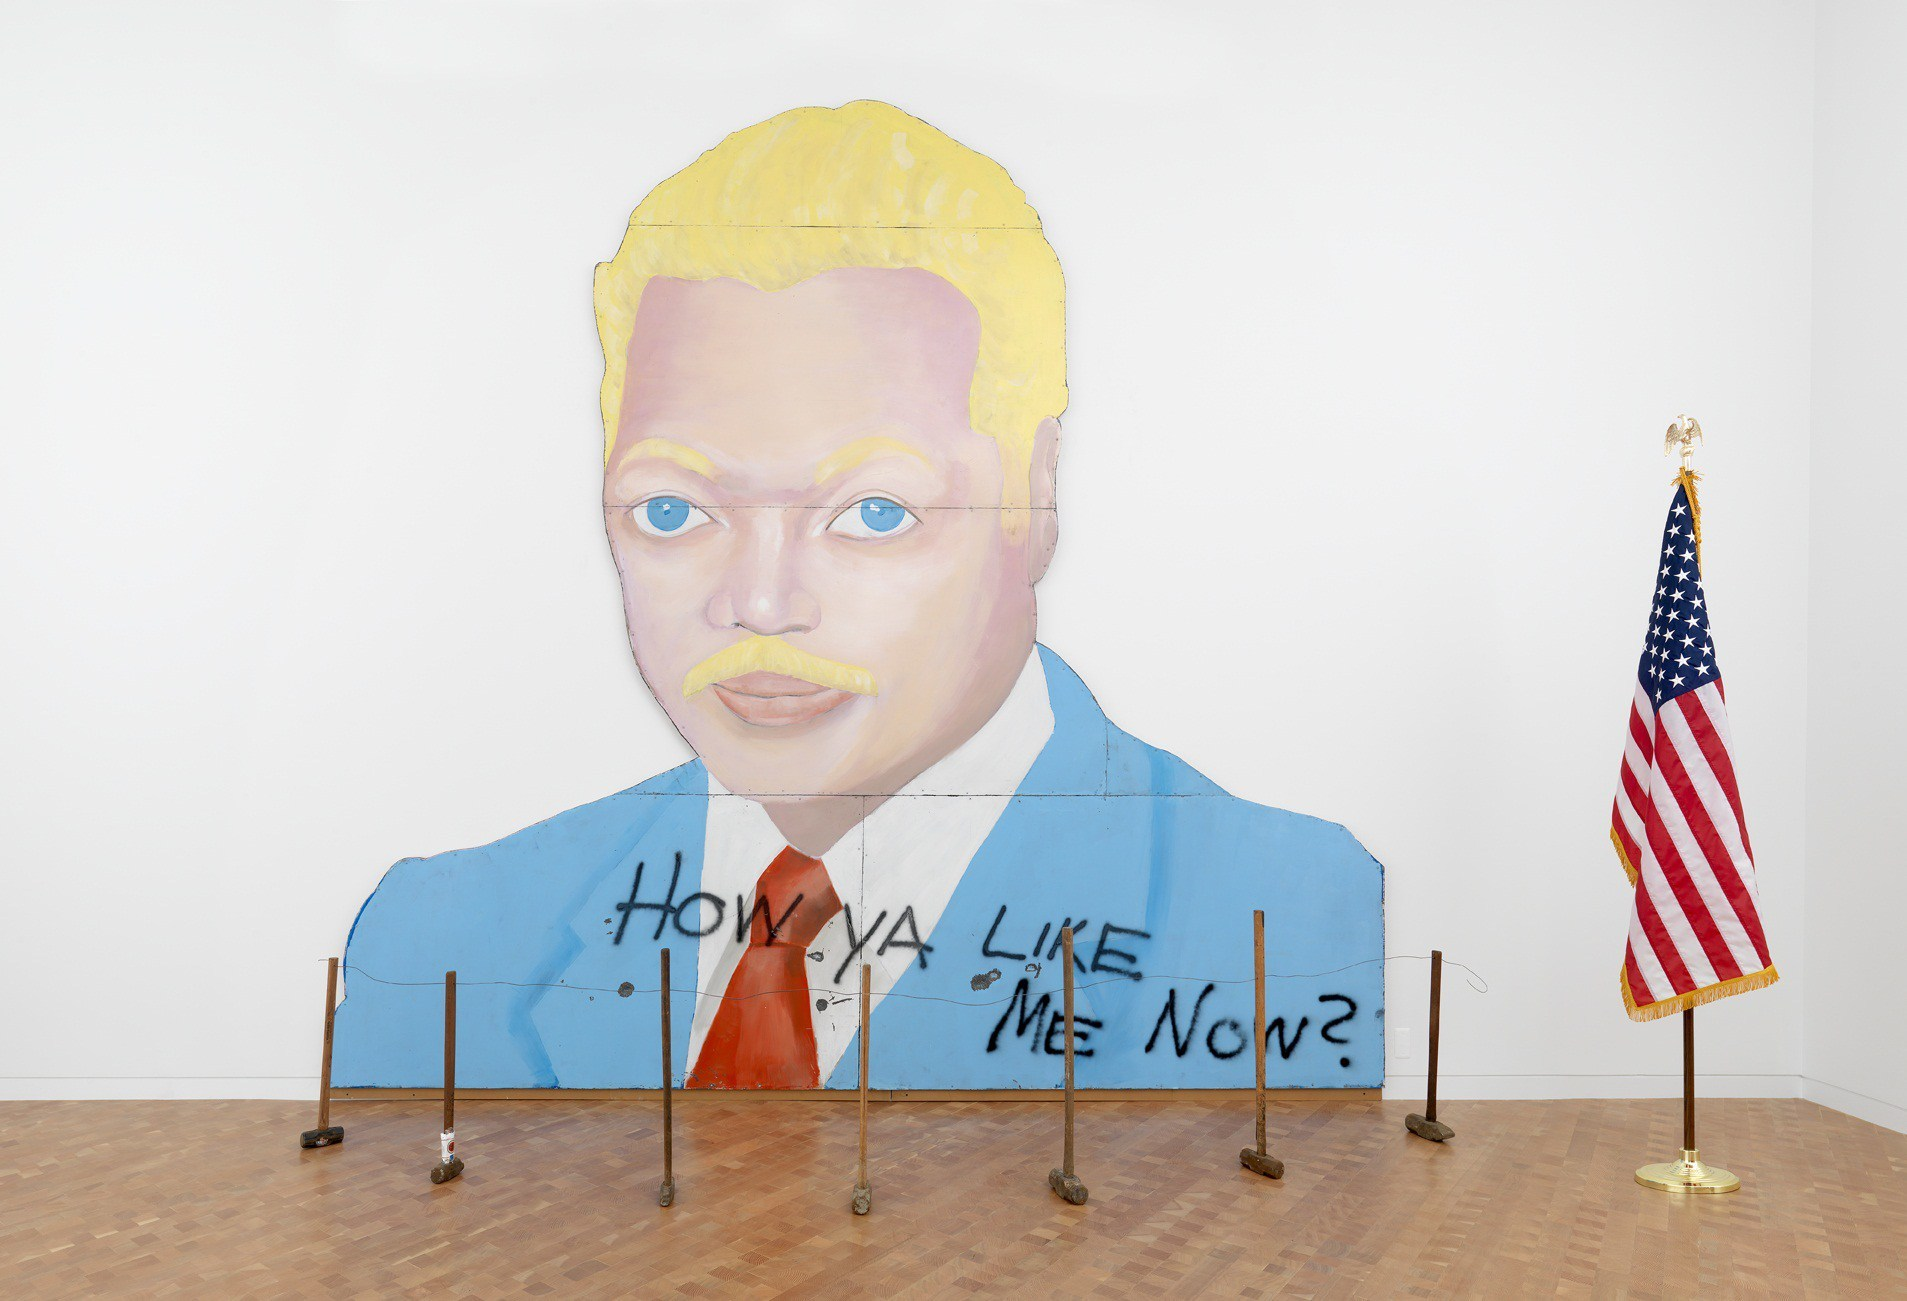 David Hammons, How Ya Like Me Now?, 1989